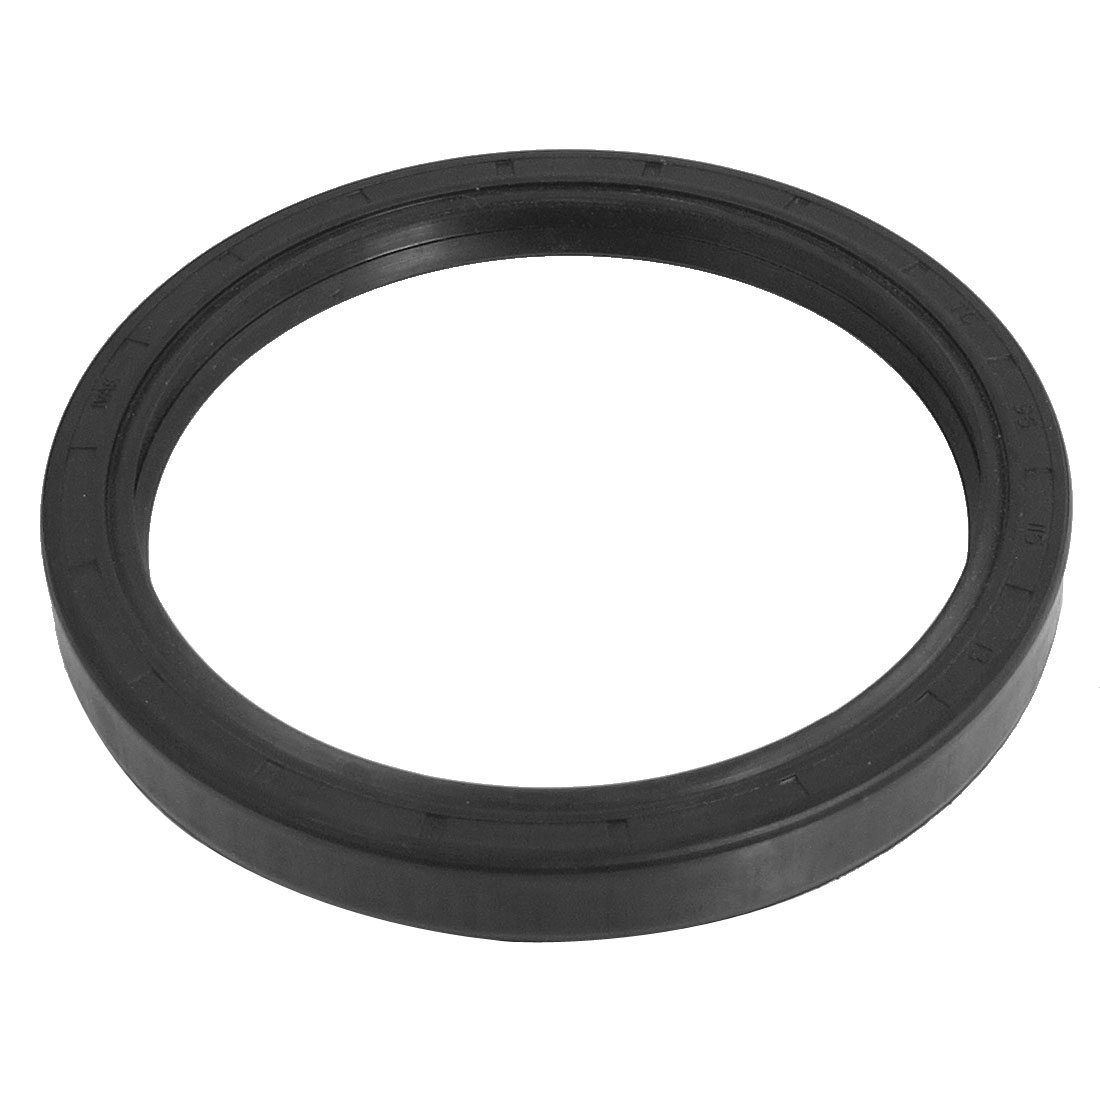 Black Nitrile Rubber Dual Lips Oil Shaft Seal TC 95mm x 115mm x 13mm